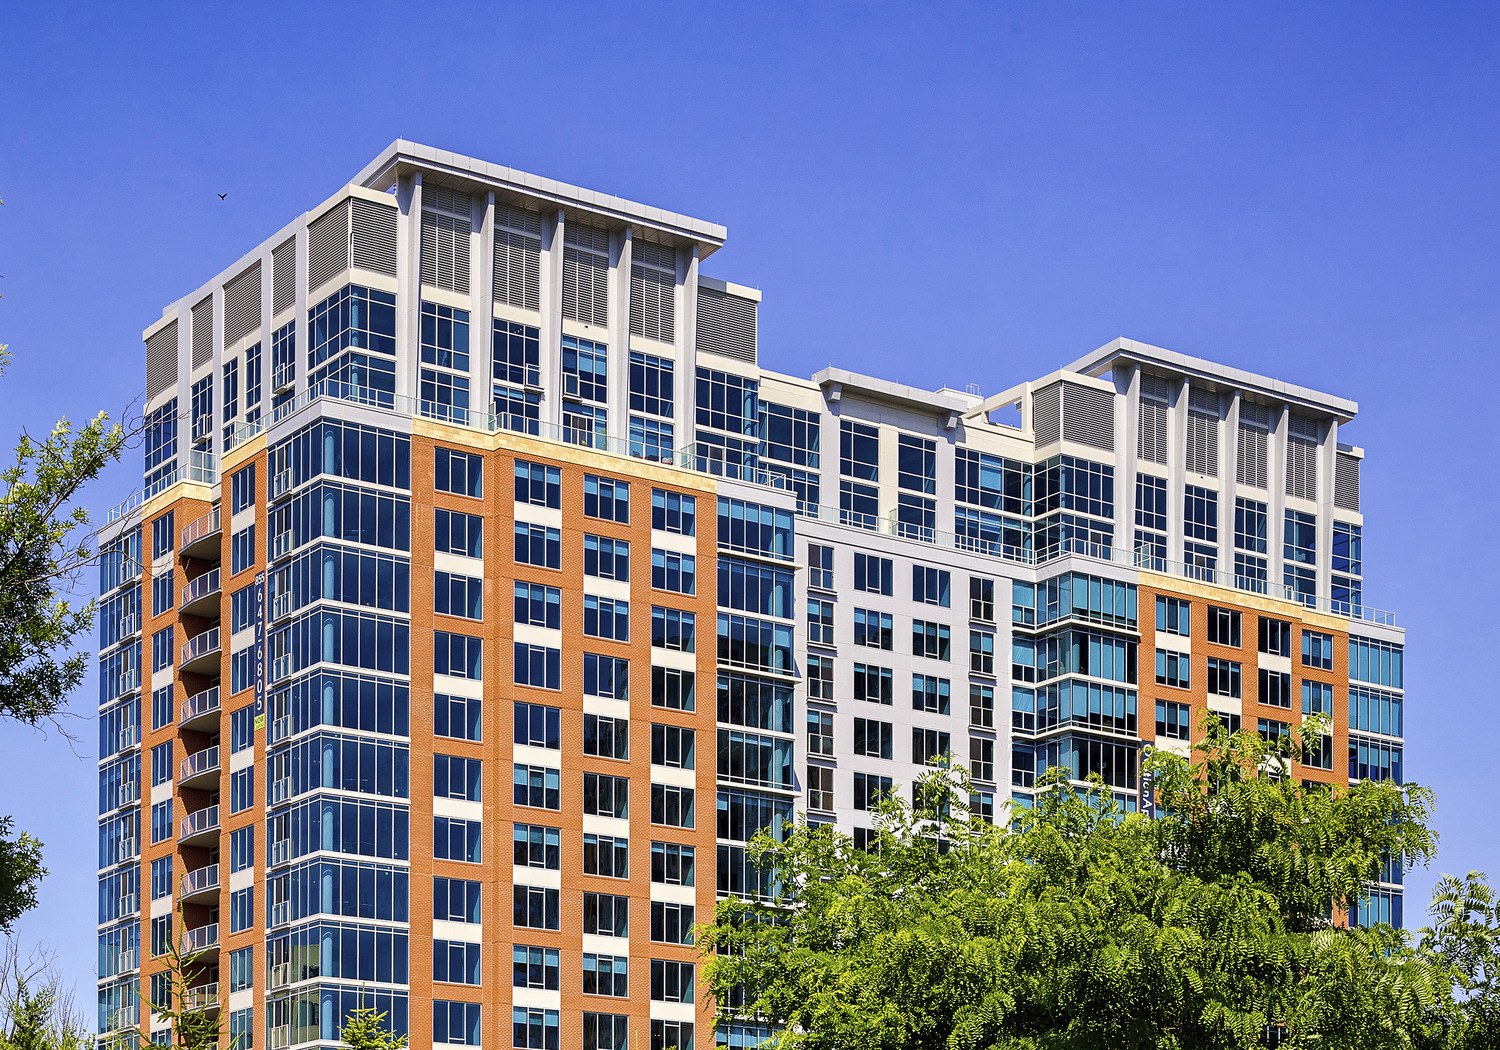 CBG builds Ovation at Park Crest, a 300-Unit, 19-Story LEED® Gold Luxury Apartment Community in McLean, VA - Image #2